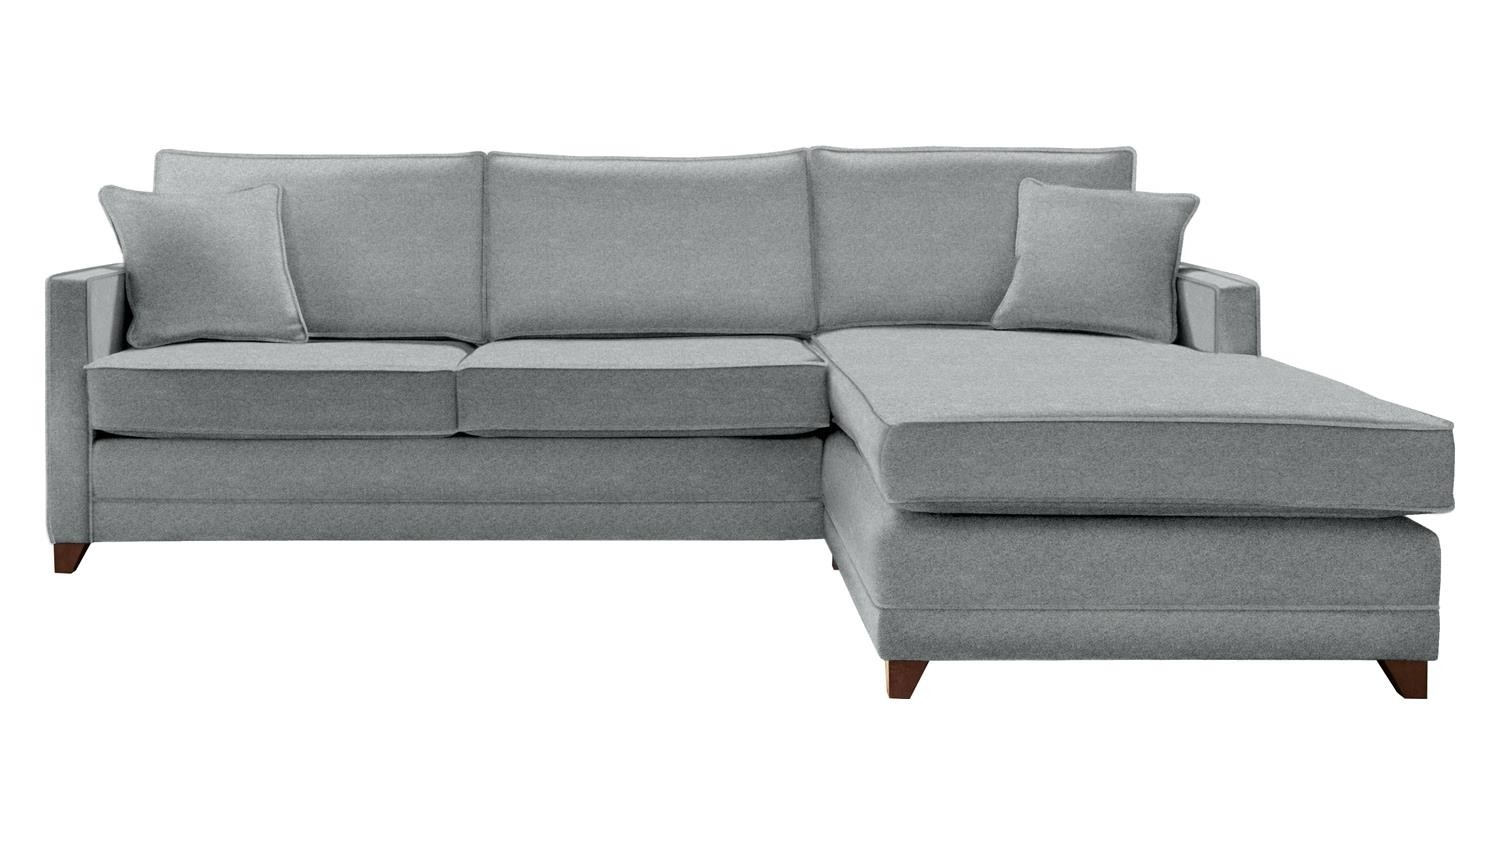 The Aldbourne 5 Seater Chaise Sofa Bed